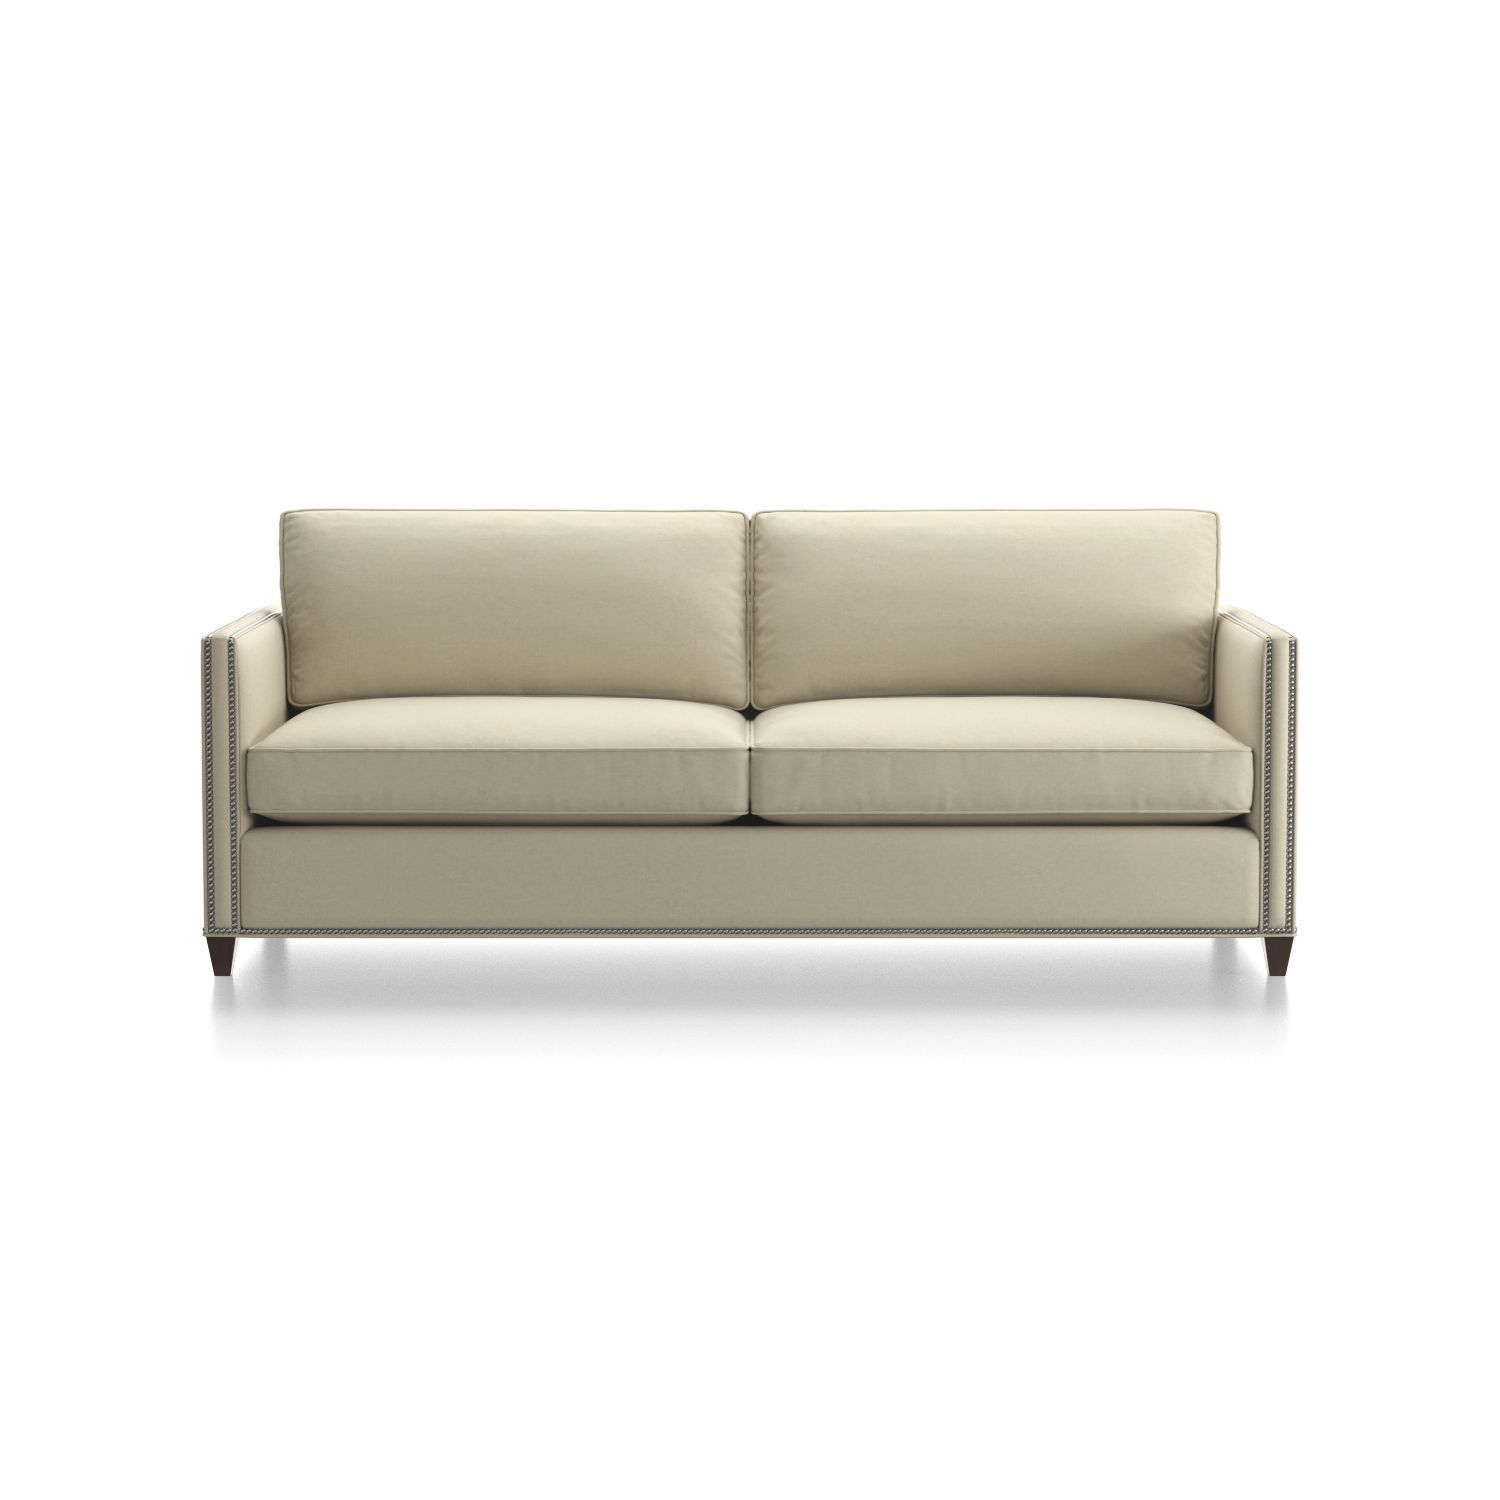 Leather Sleeper Sofa With Nailheads Twilight Dryden Queen Wishlist Pinterest Shop Comfy And Stylish This Is Outfitted A Bi Fold Innerspring Mattress Tilt Up